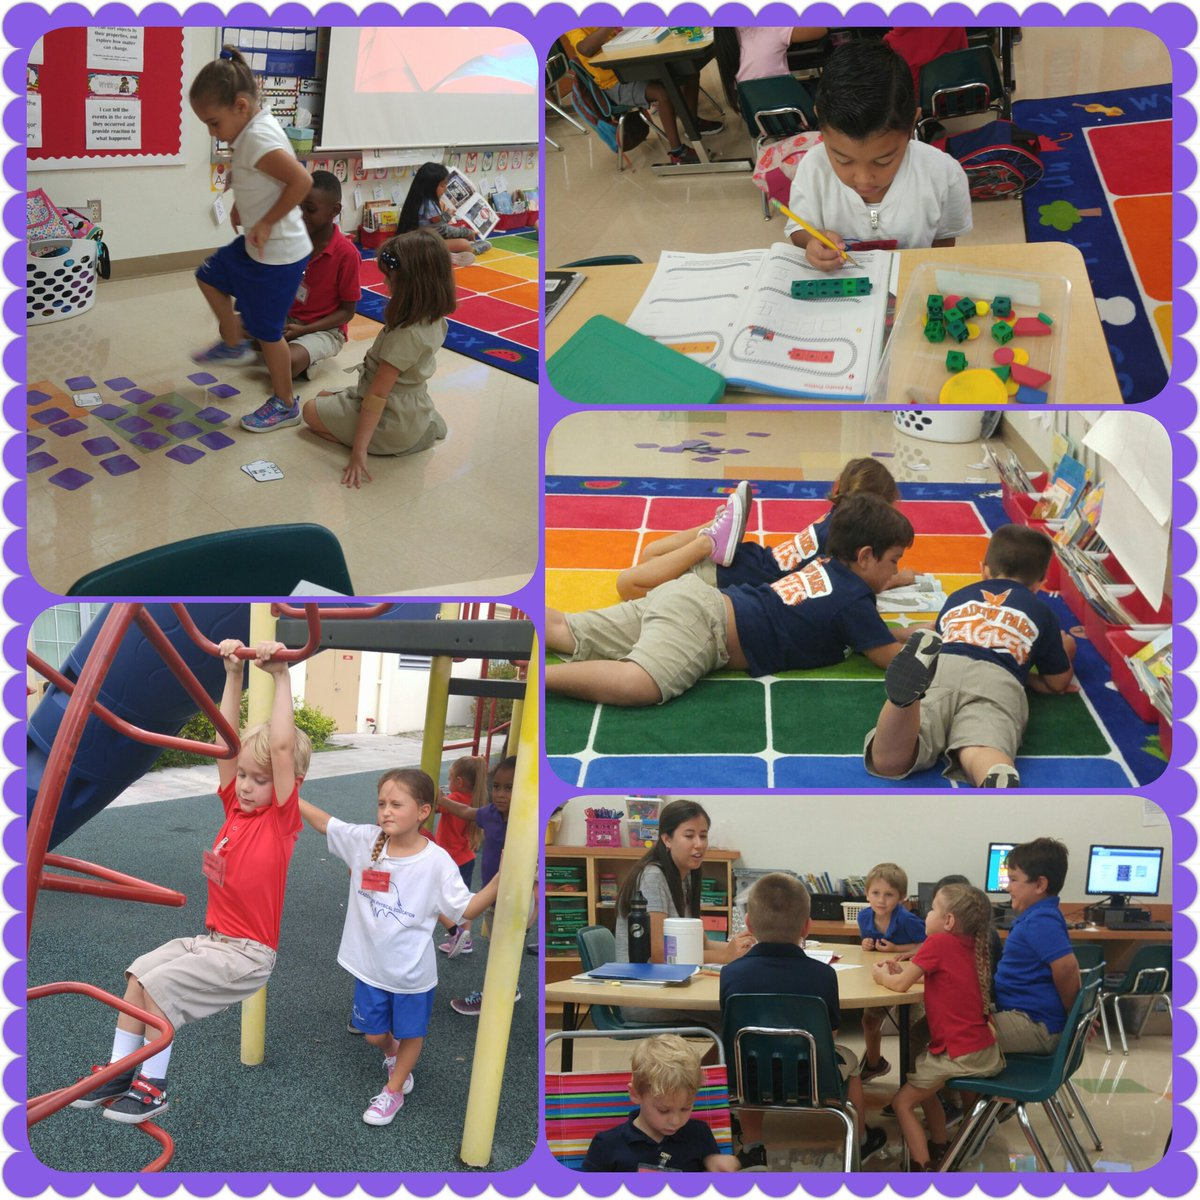 In K we work out our brain muscles &amp; our upper body muscles. #pullups #smallgroups #engagement @MeadowParkEl @hainesv @marjie_rowe<br>http://pic.twitter.com/VtHMcyURK4